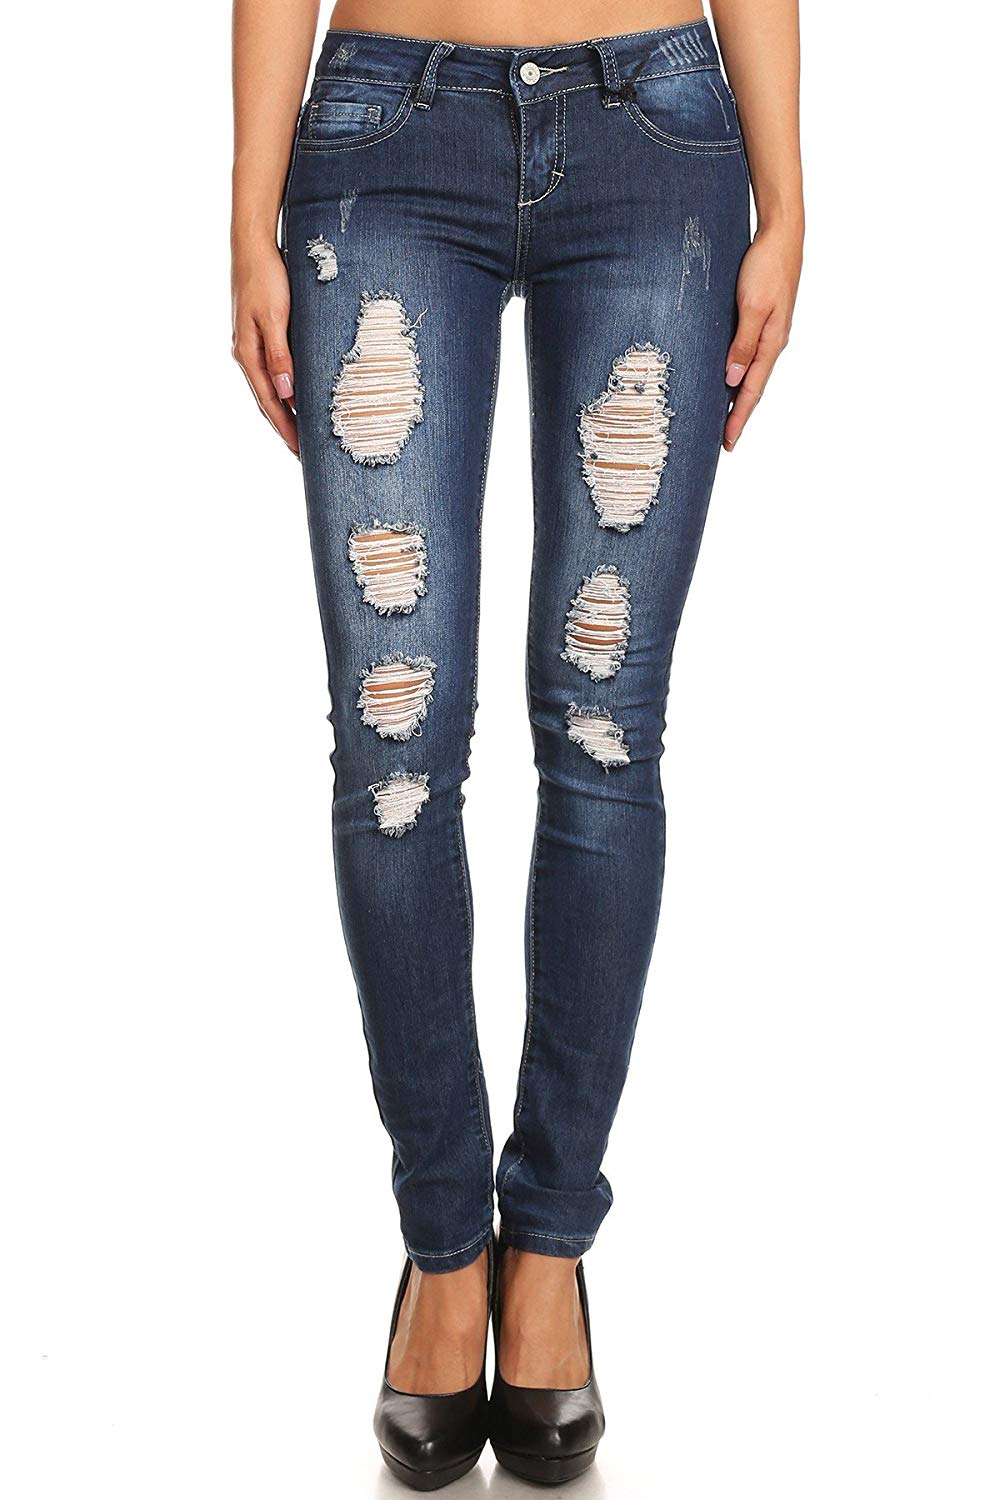 9c5ddef789c Get Quotations · wax jean Wax Junior s Distressed Skinny Jeans with Button  Zipper Closure